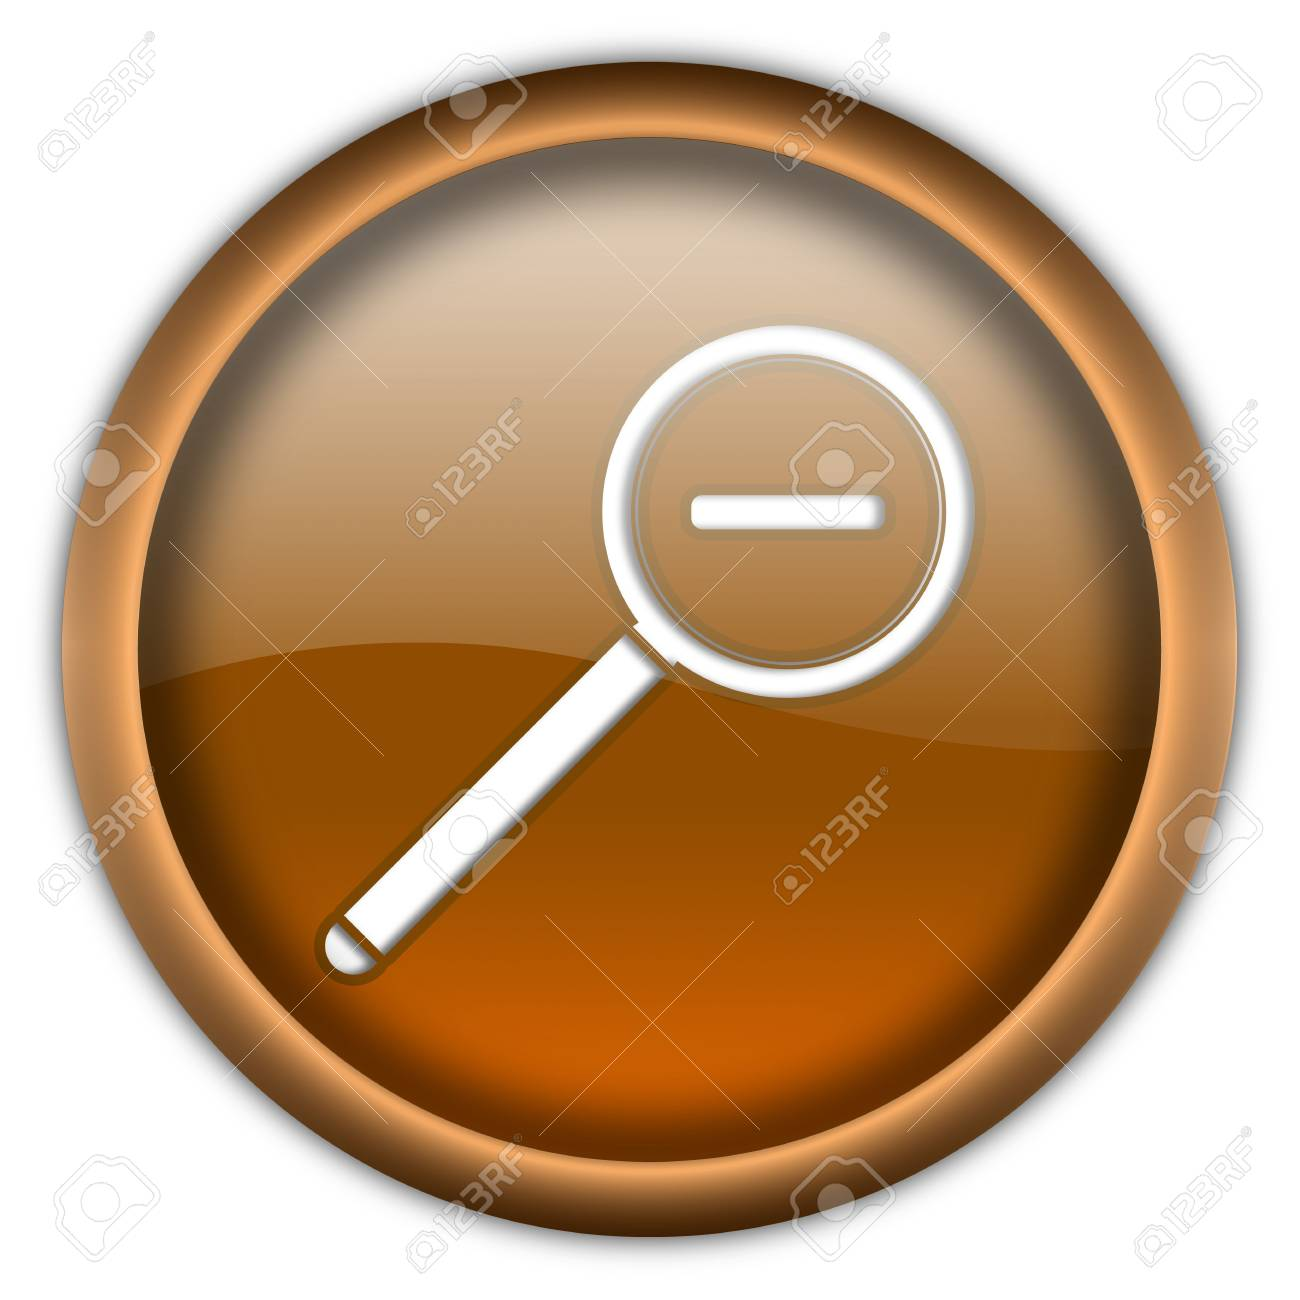 Magnifier round glossy button isolated over white background Stock Photo - 6460320